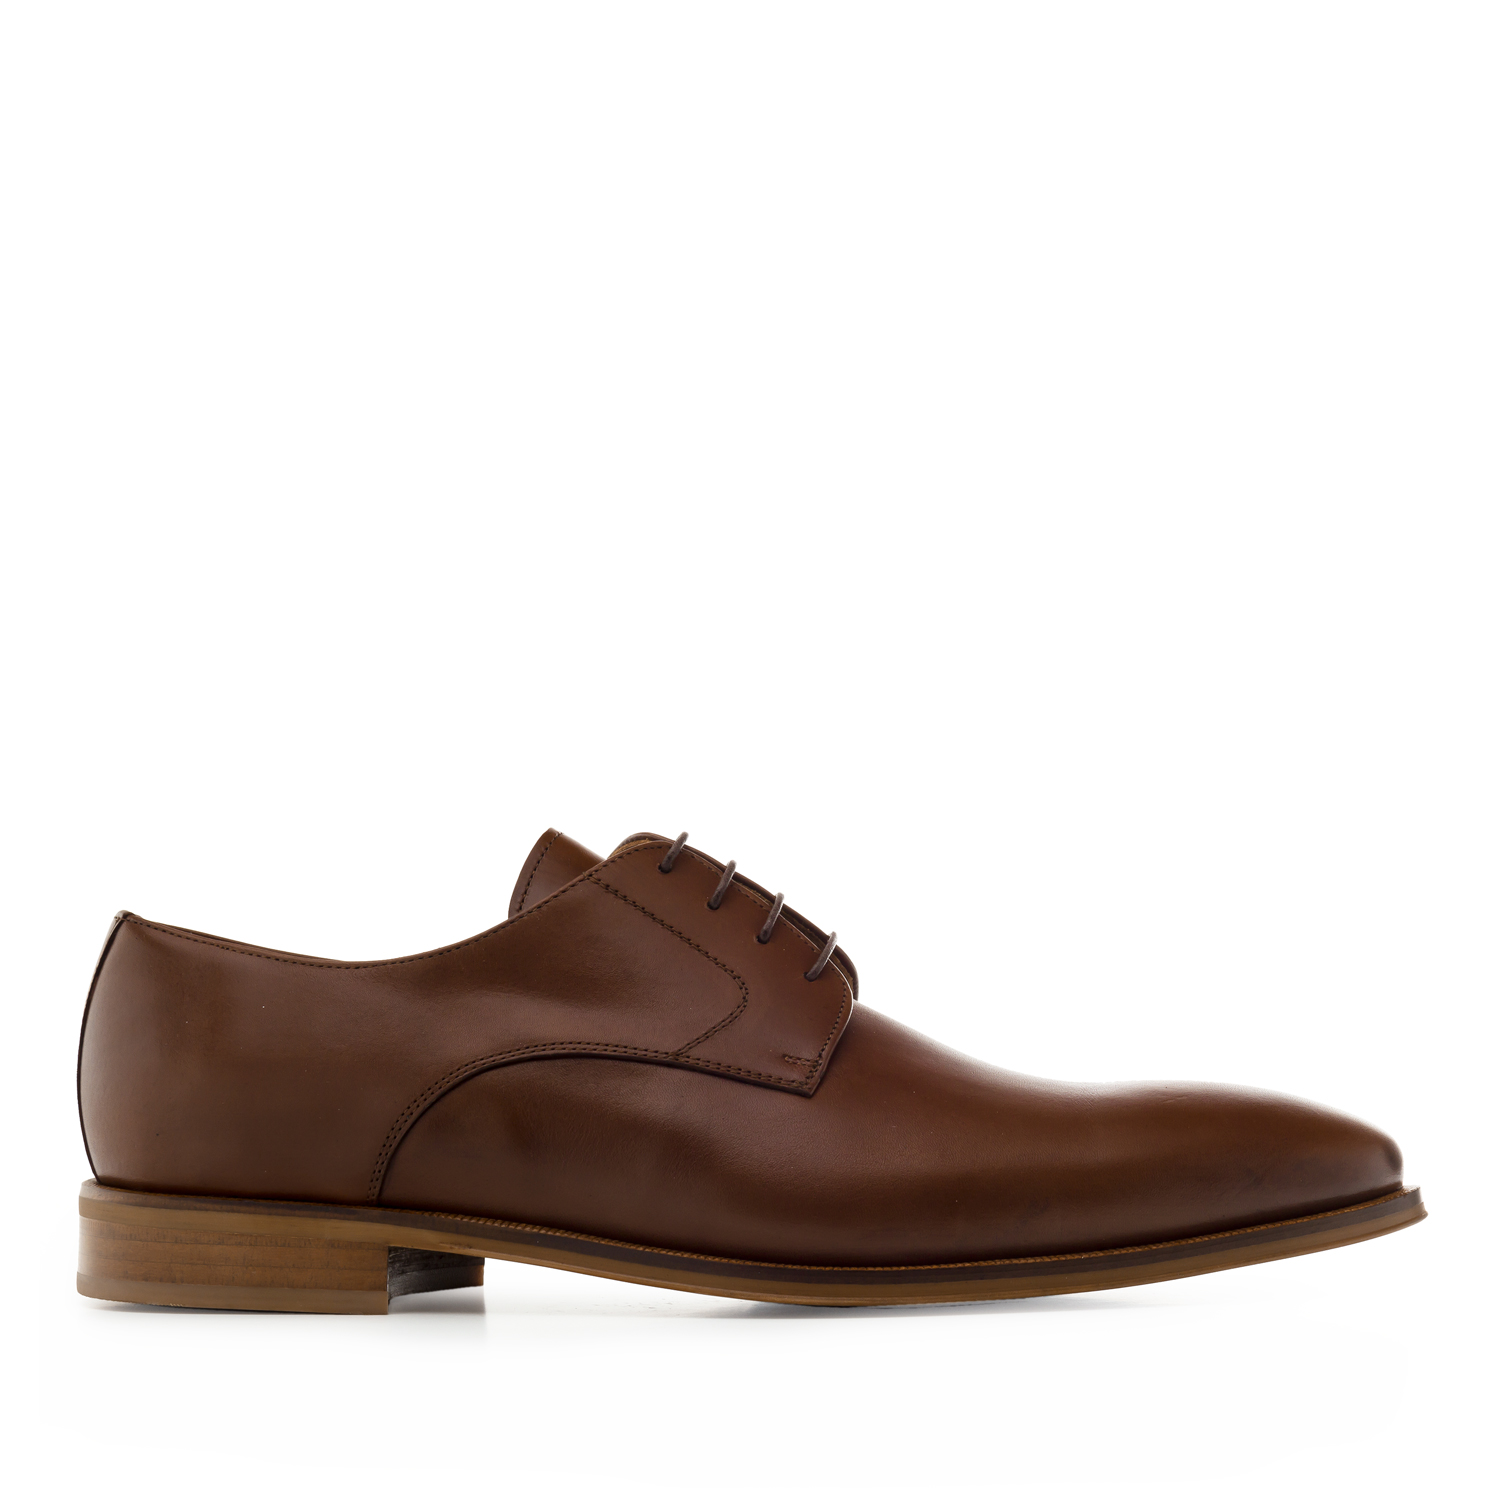 Mens Dress Shoes in Brown Leather